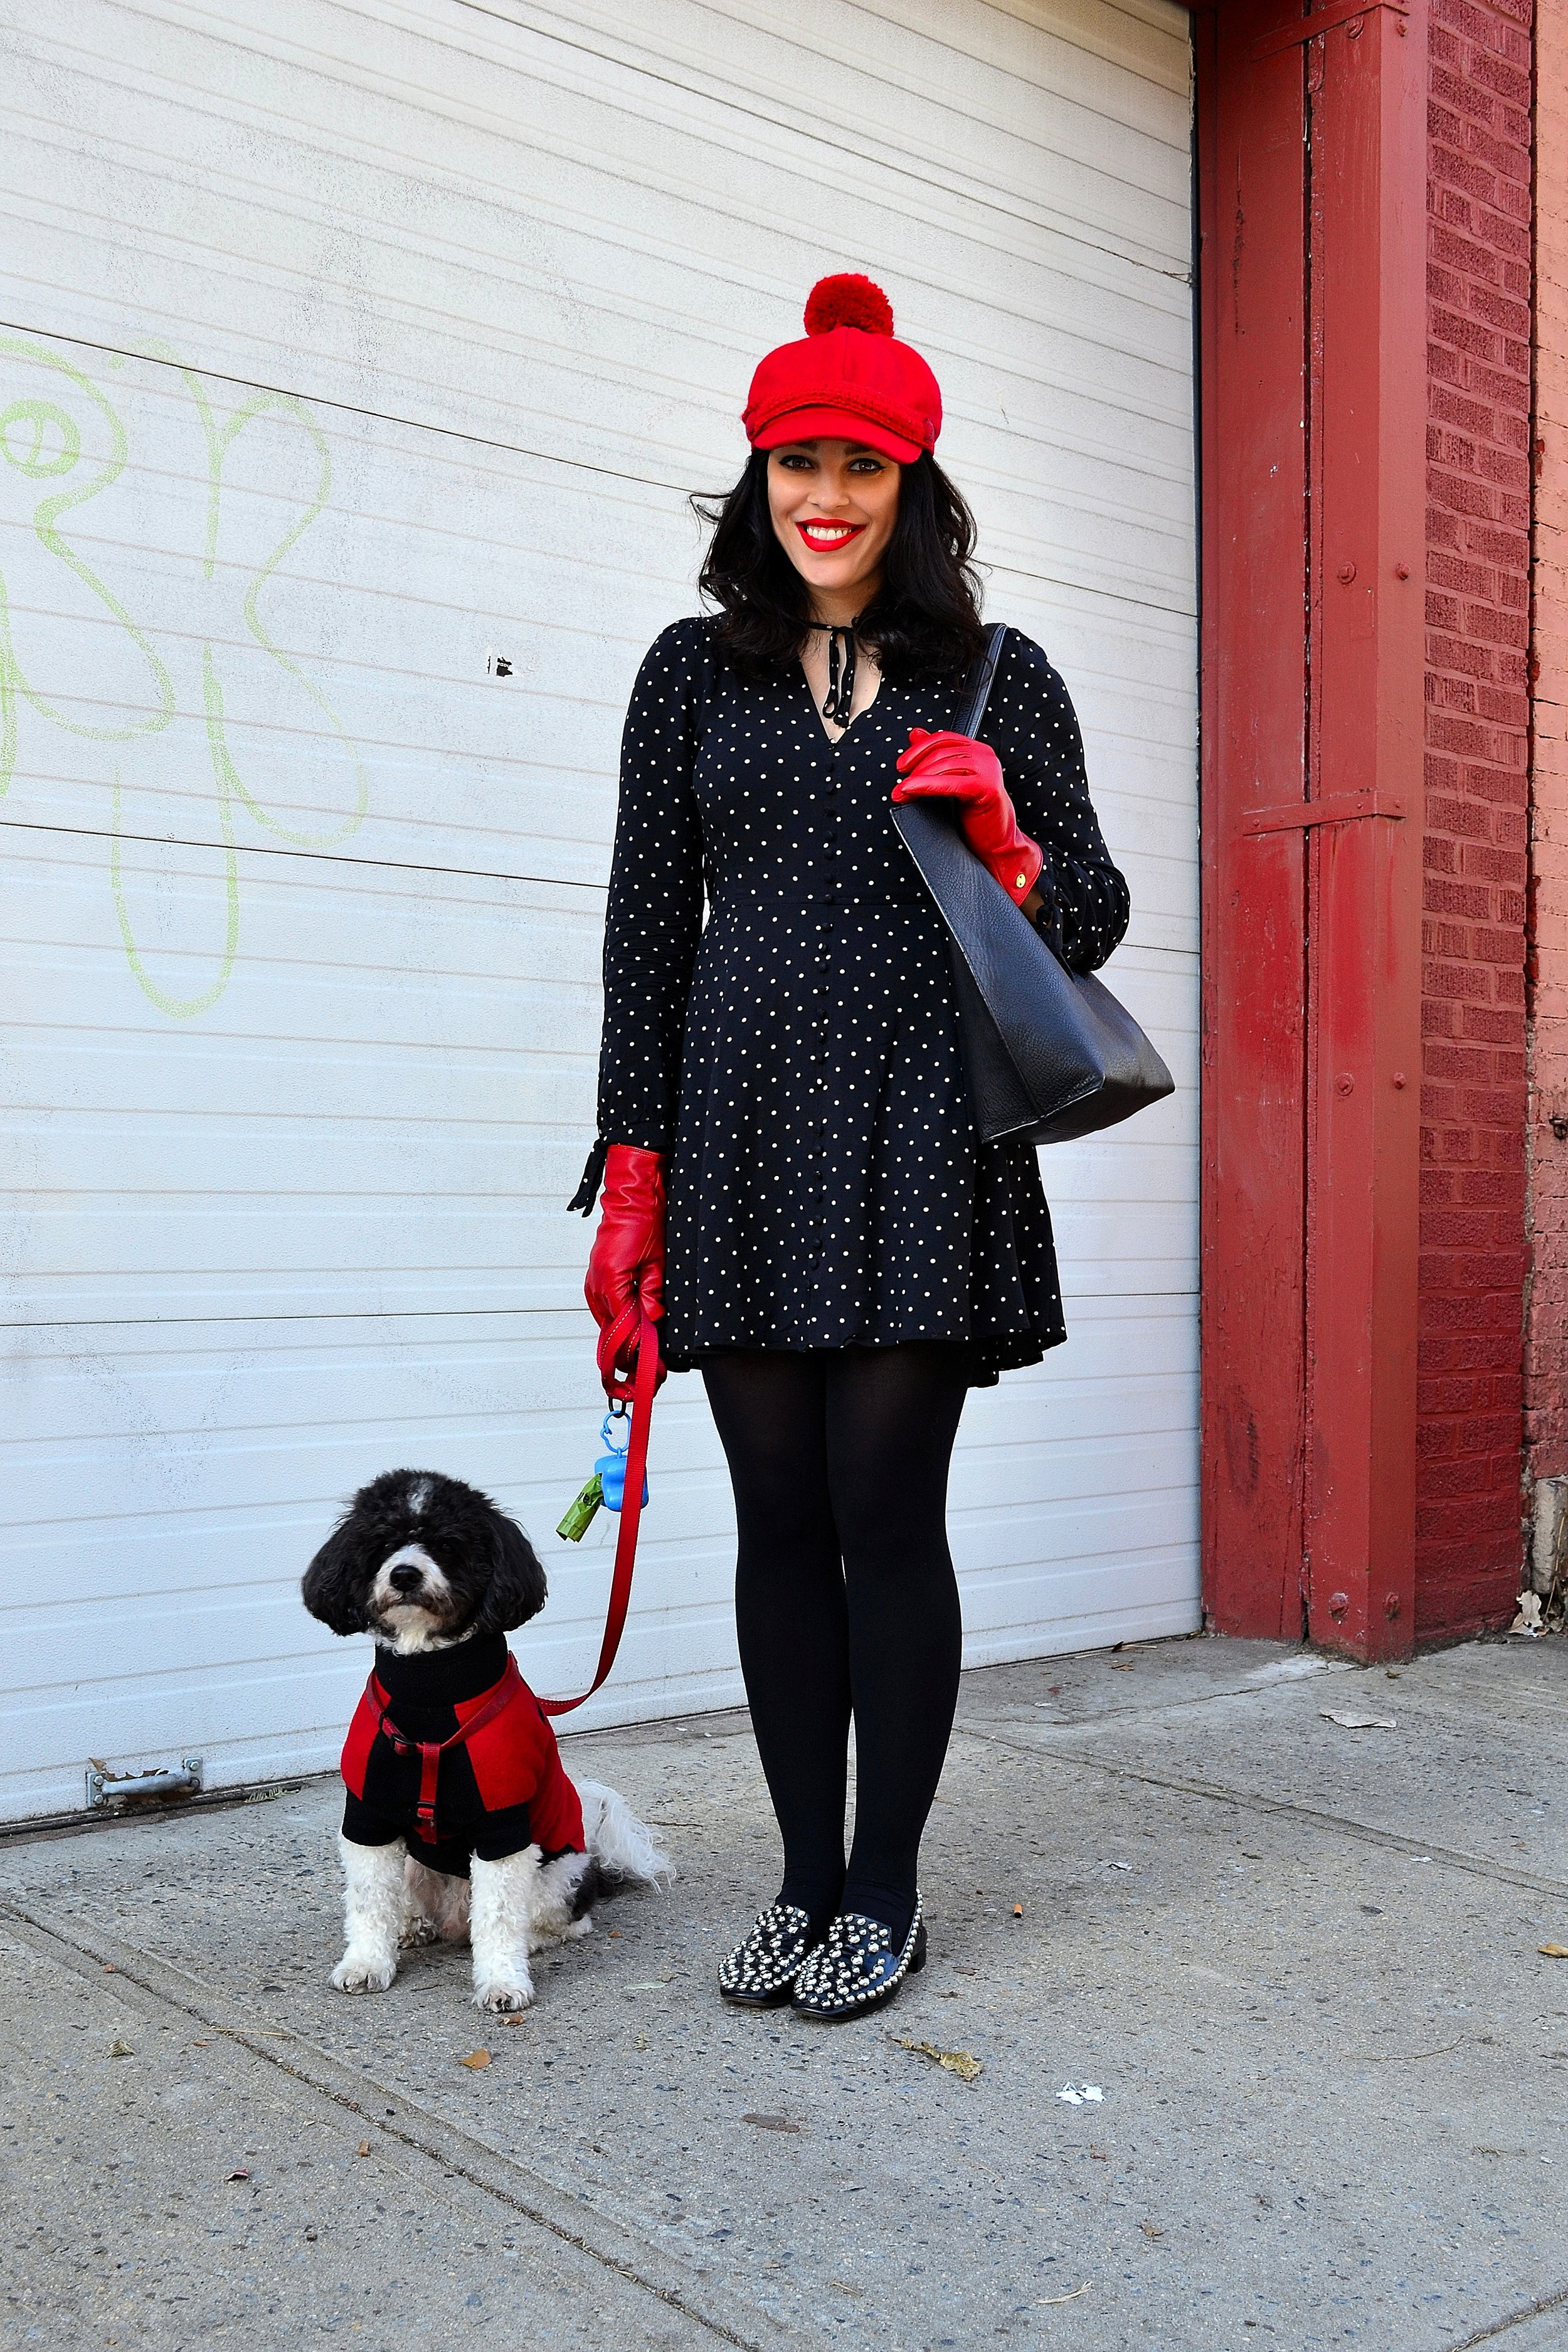 dress express tights asos loafers zara bag brooklyn industries with dog 1.JPG